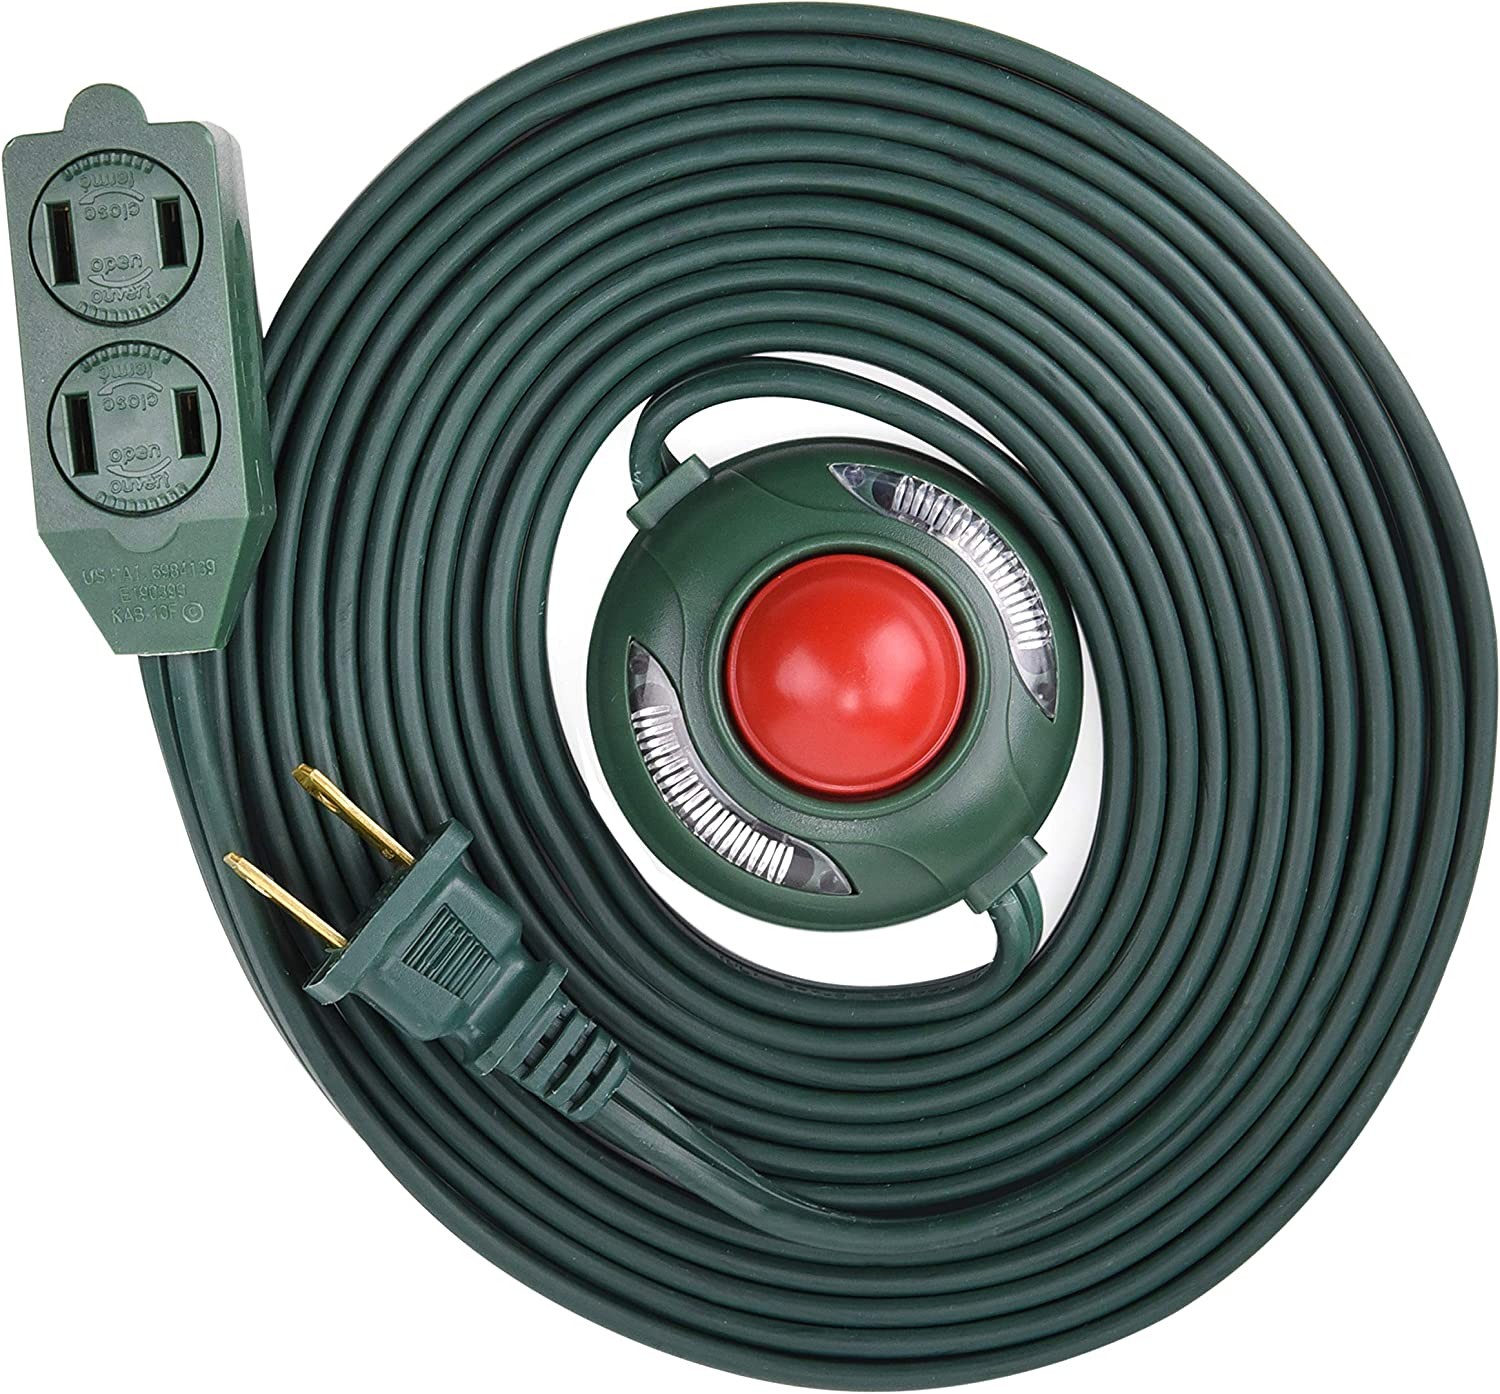 Electes 10 Feet 3 Outlet Extension Cord with Hand/Foot Switch and Light Indicator with Safety Twist-Lock, 16/2, Green, UL Listed (1)